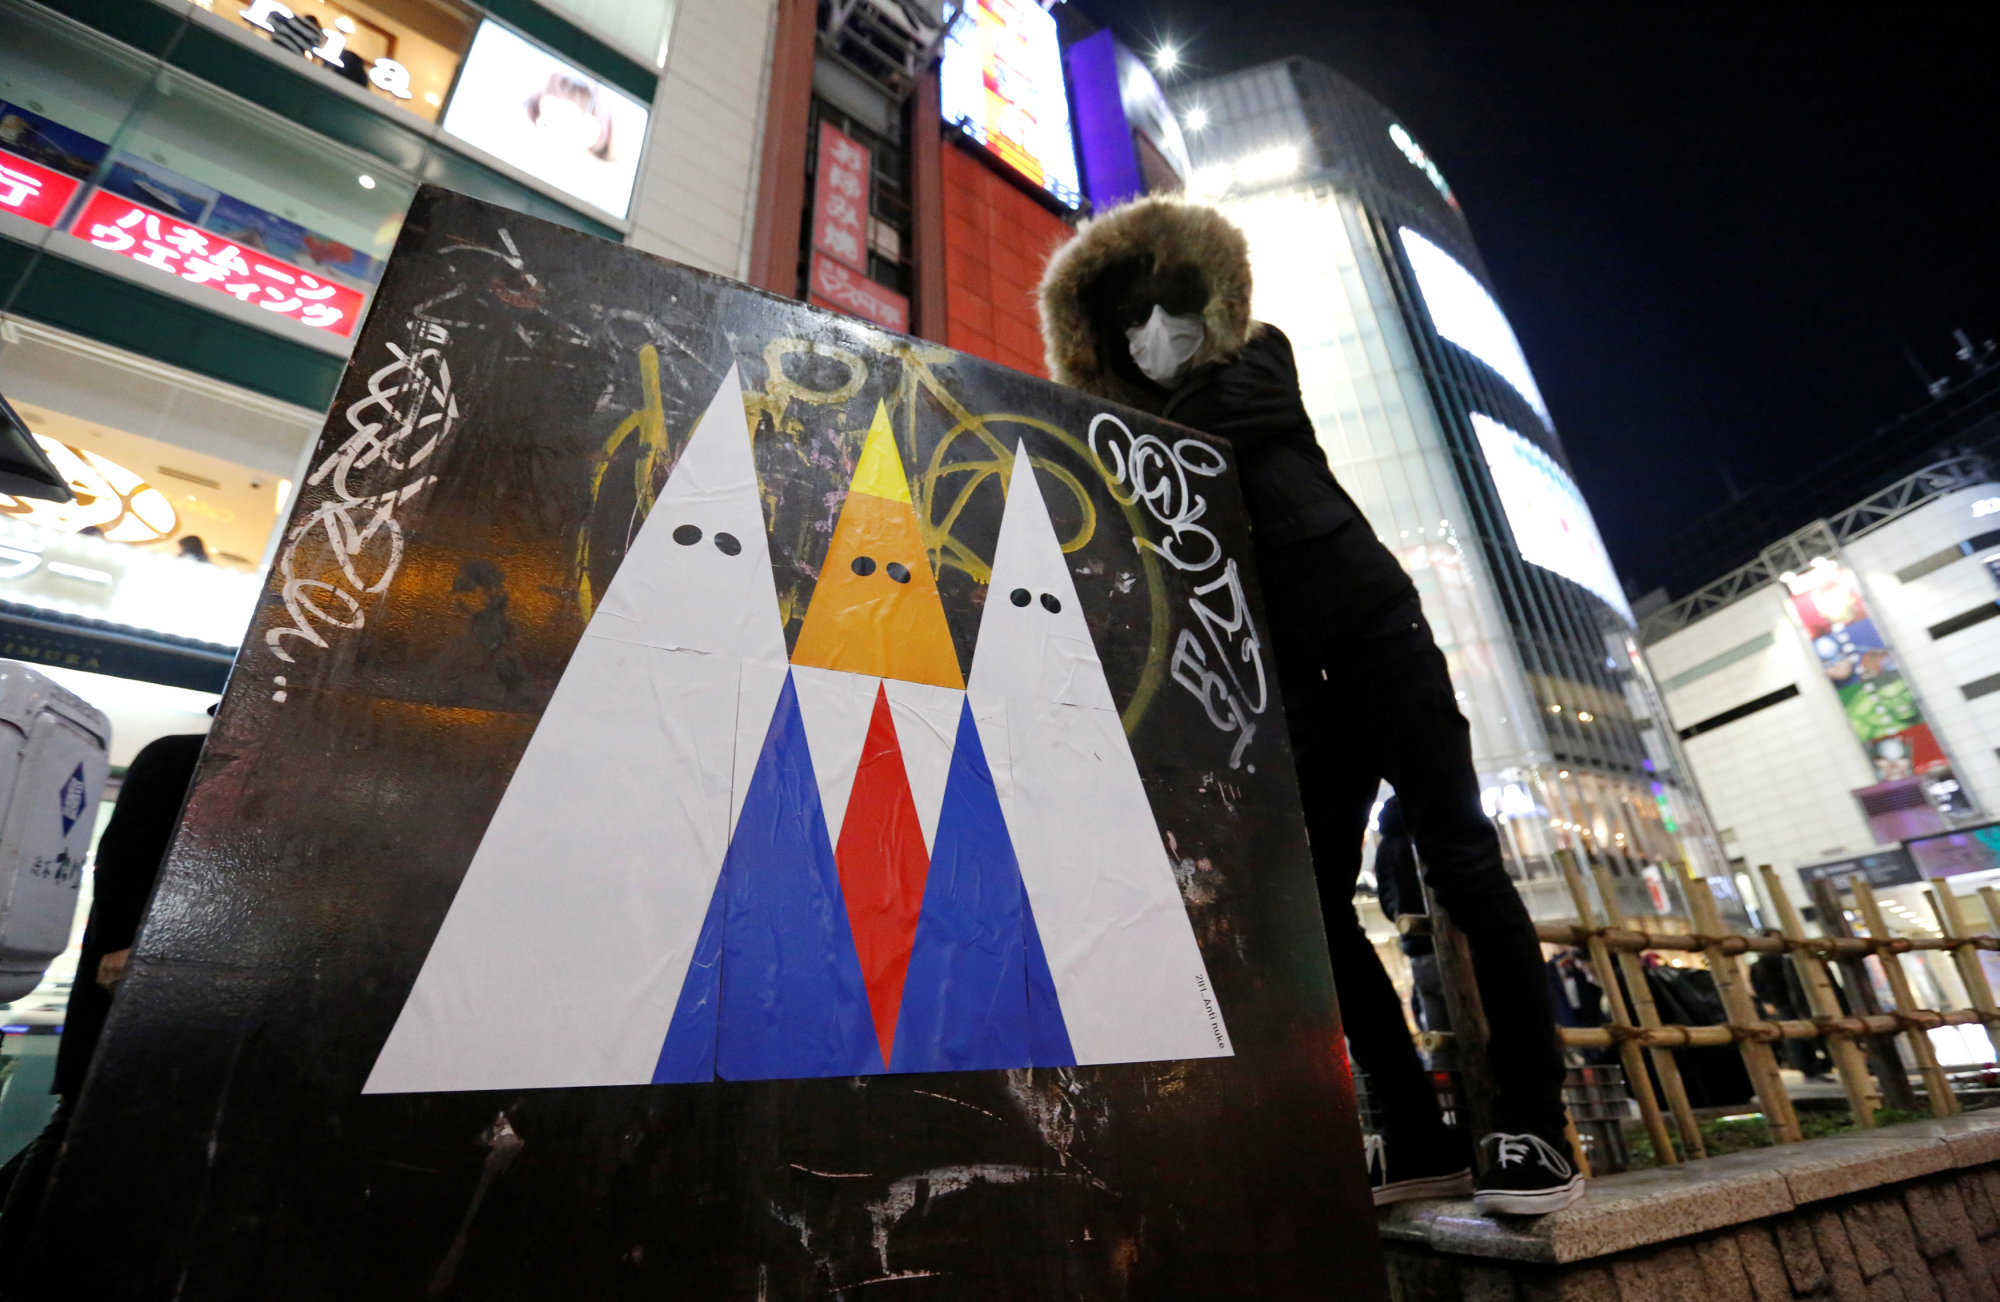 A graffiti artist known as 281_Anti Nuke poses for a photo next to an example of his recent artwork depicting U.S. President Donald Trump, in Tokyo's Shibuya district on Friday. | REUTERS